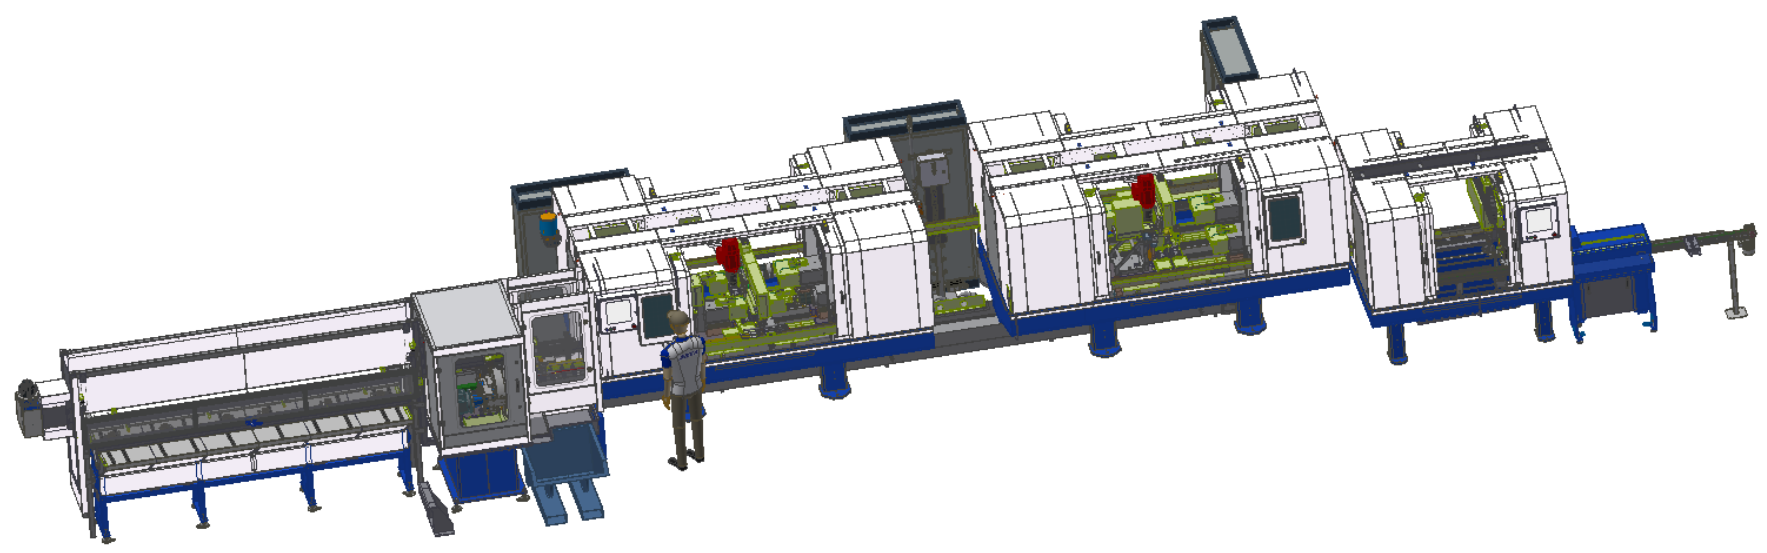 DEM Series: Hybrid special line Fully automatic Hybrid Special Line for bar and tube materials, configurable with 8 to 16 spindles and multiple machining operations